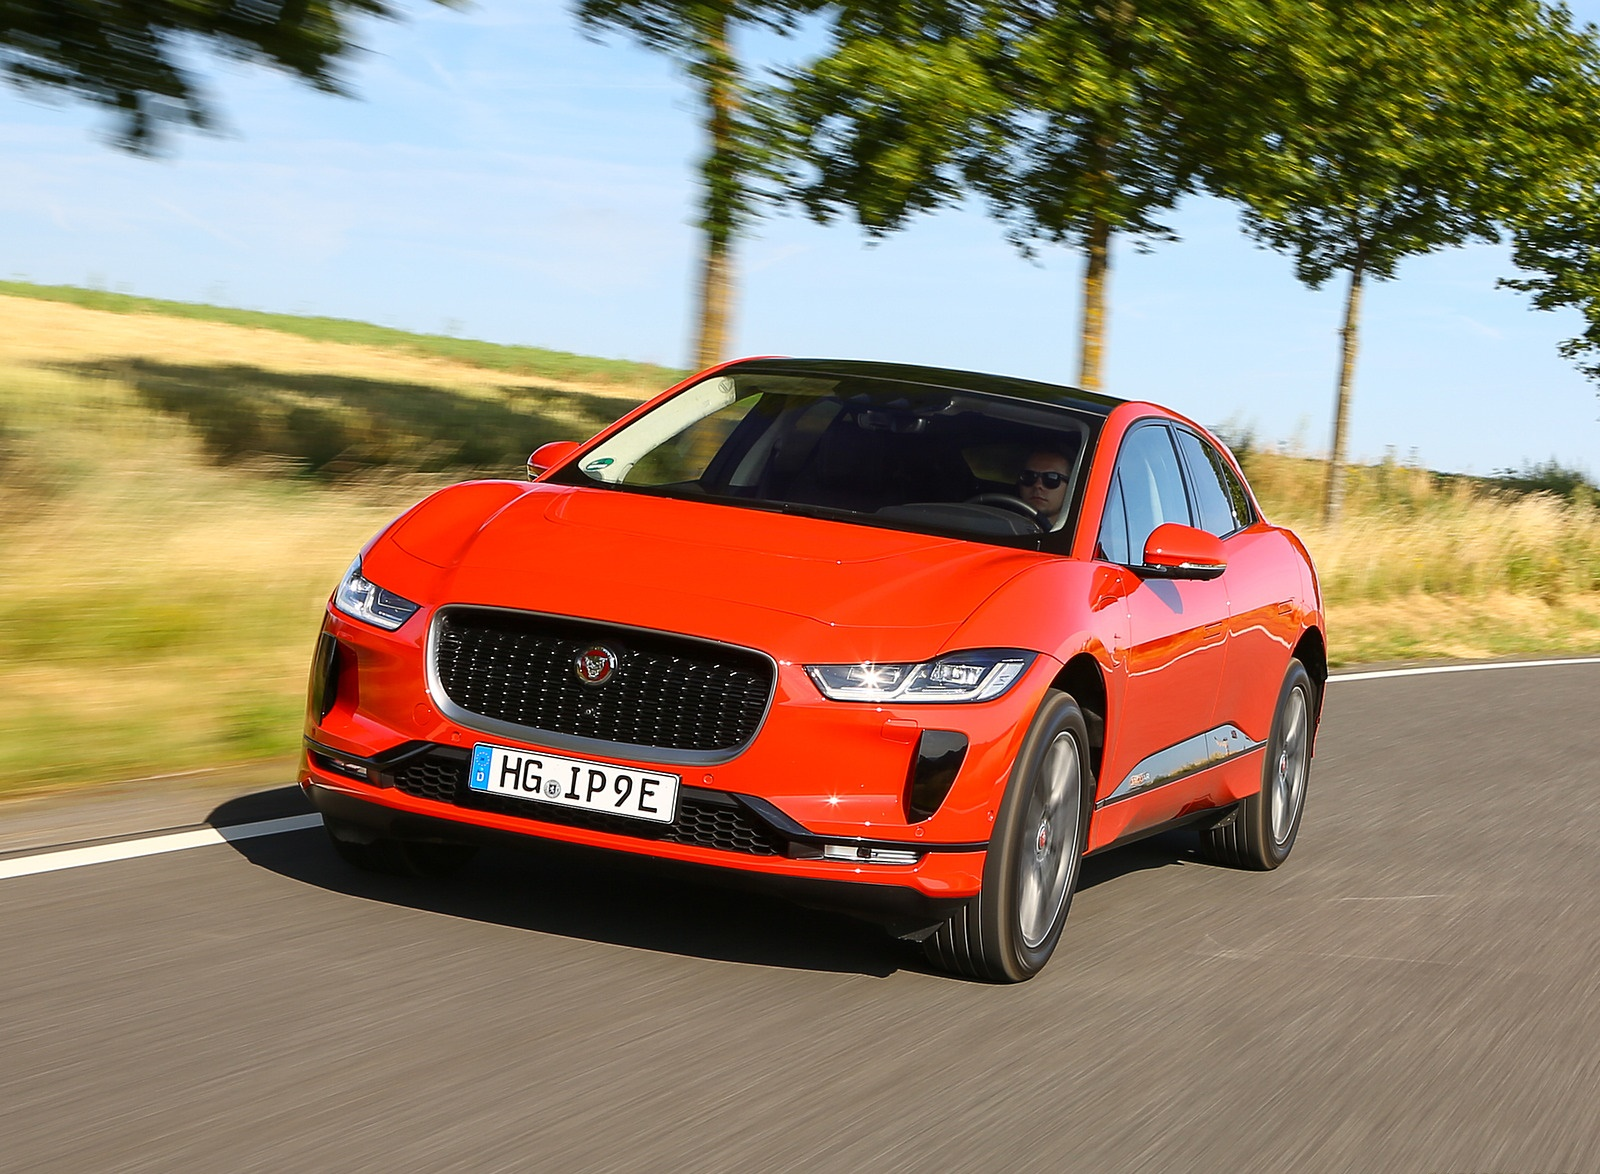 2019 Jaguar I-PACE EV400 AWD HSE First Edition (Color: Photon Red) Front Three-Quarter Wallpapers #11 of 192